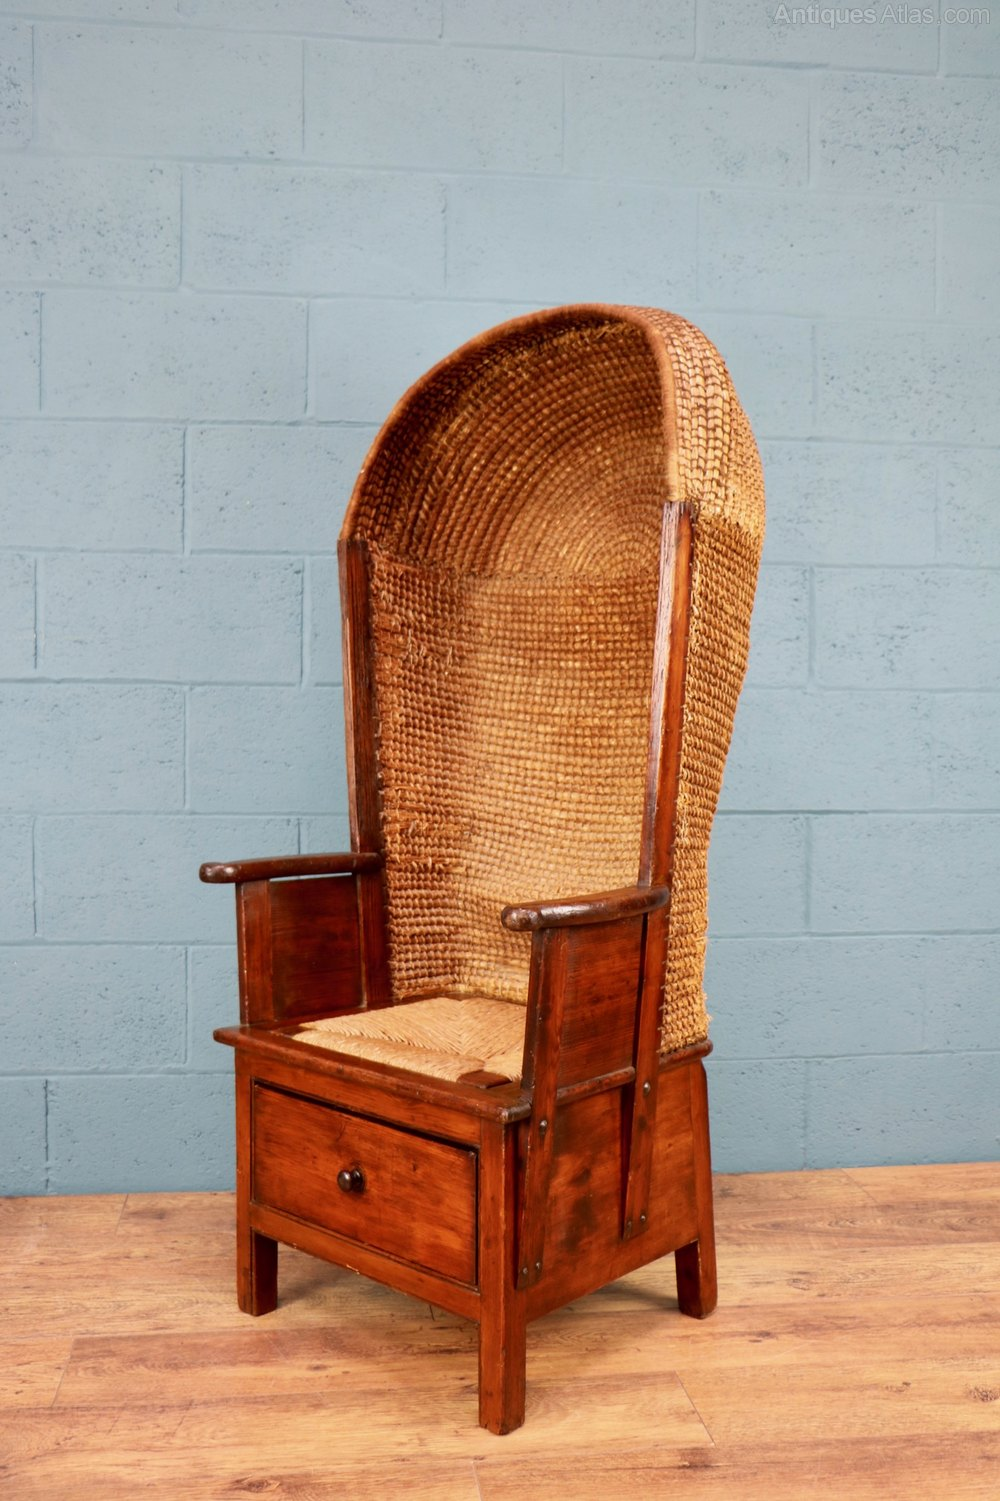 Gentlemans Orkney Chair Antique ... - Gentleman's Orkney Chair - Antiques Atlas